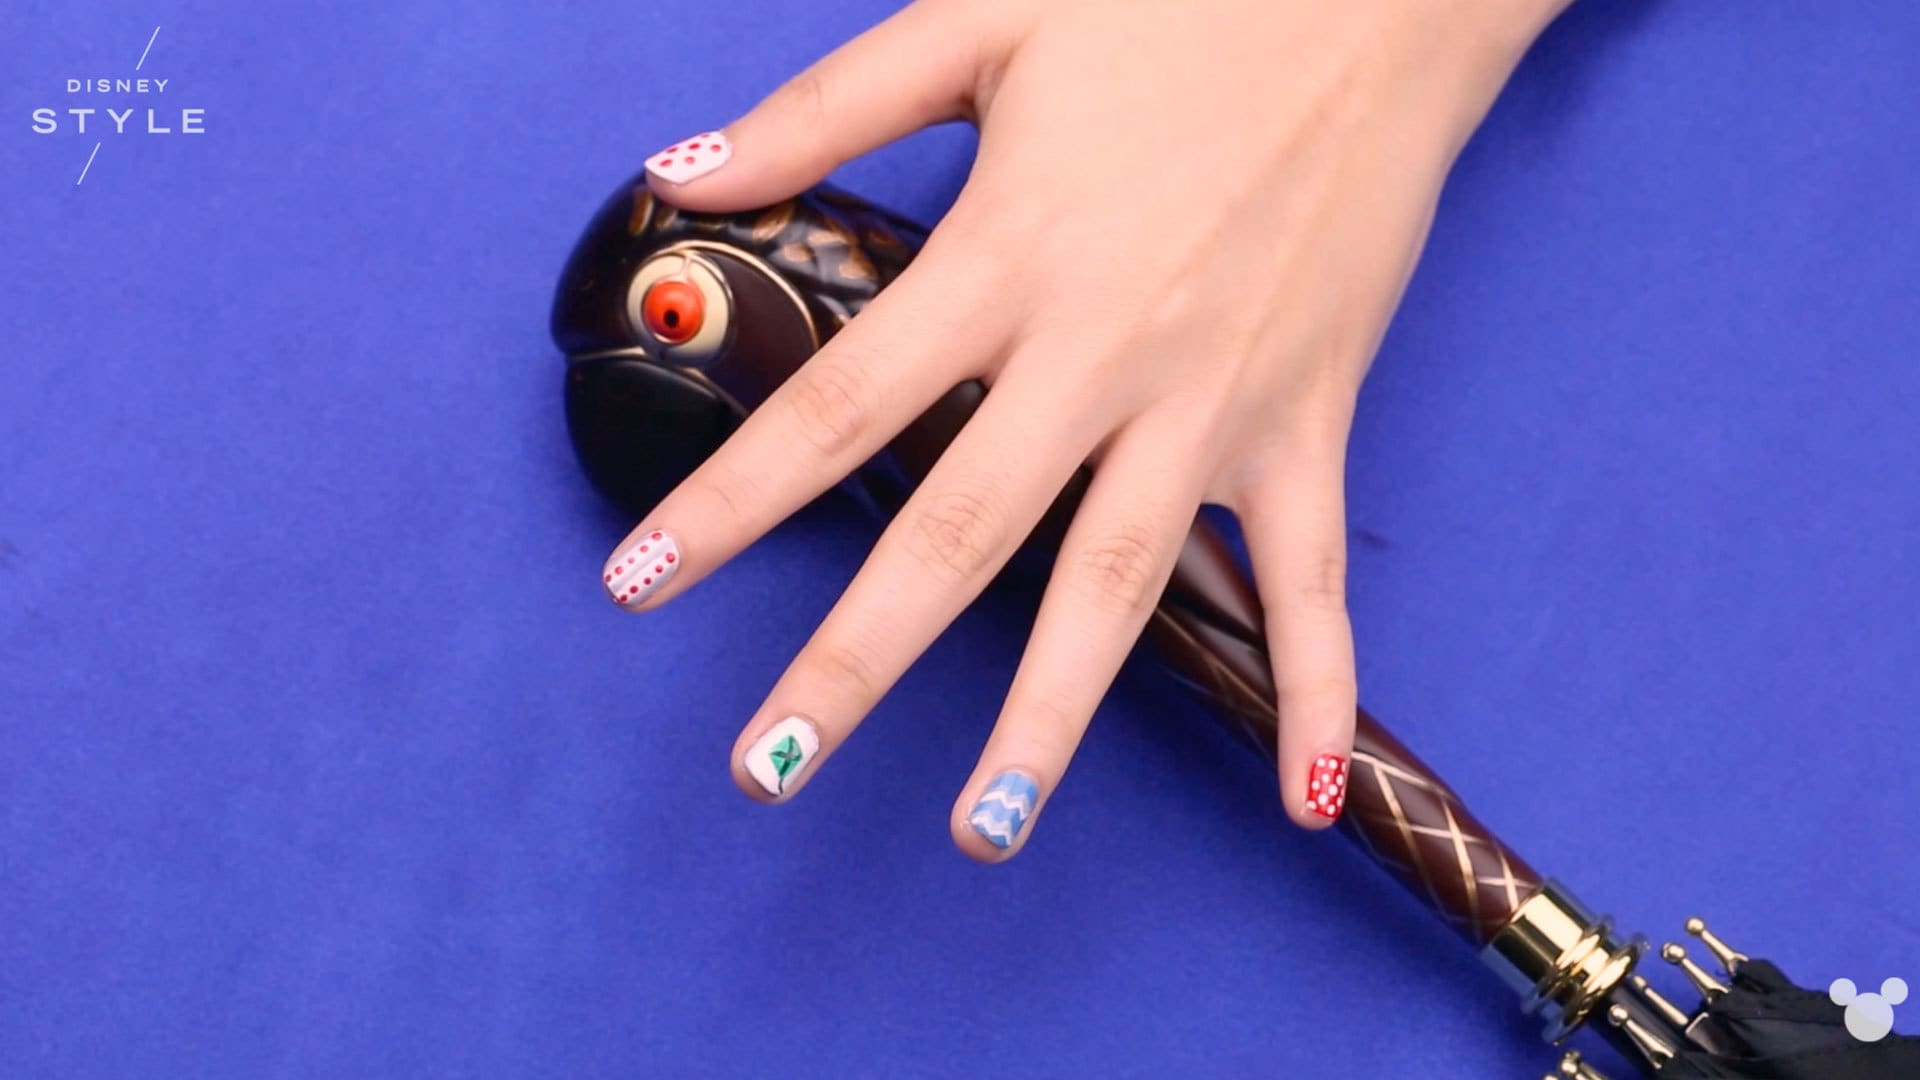 Disney Style: Mary Poppins Returns-Inspired Nails